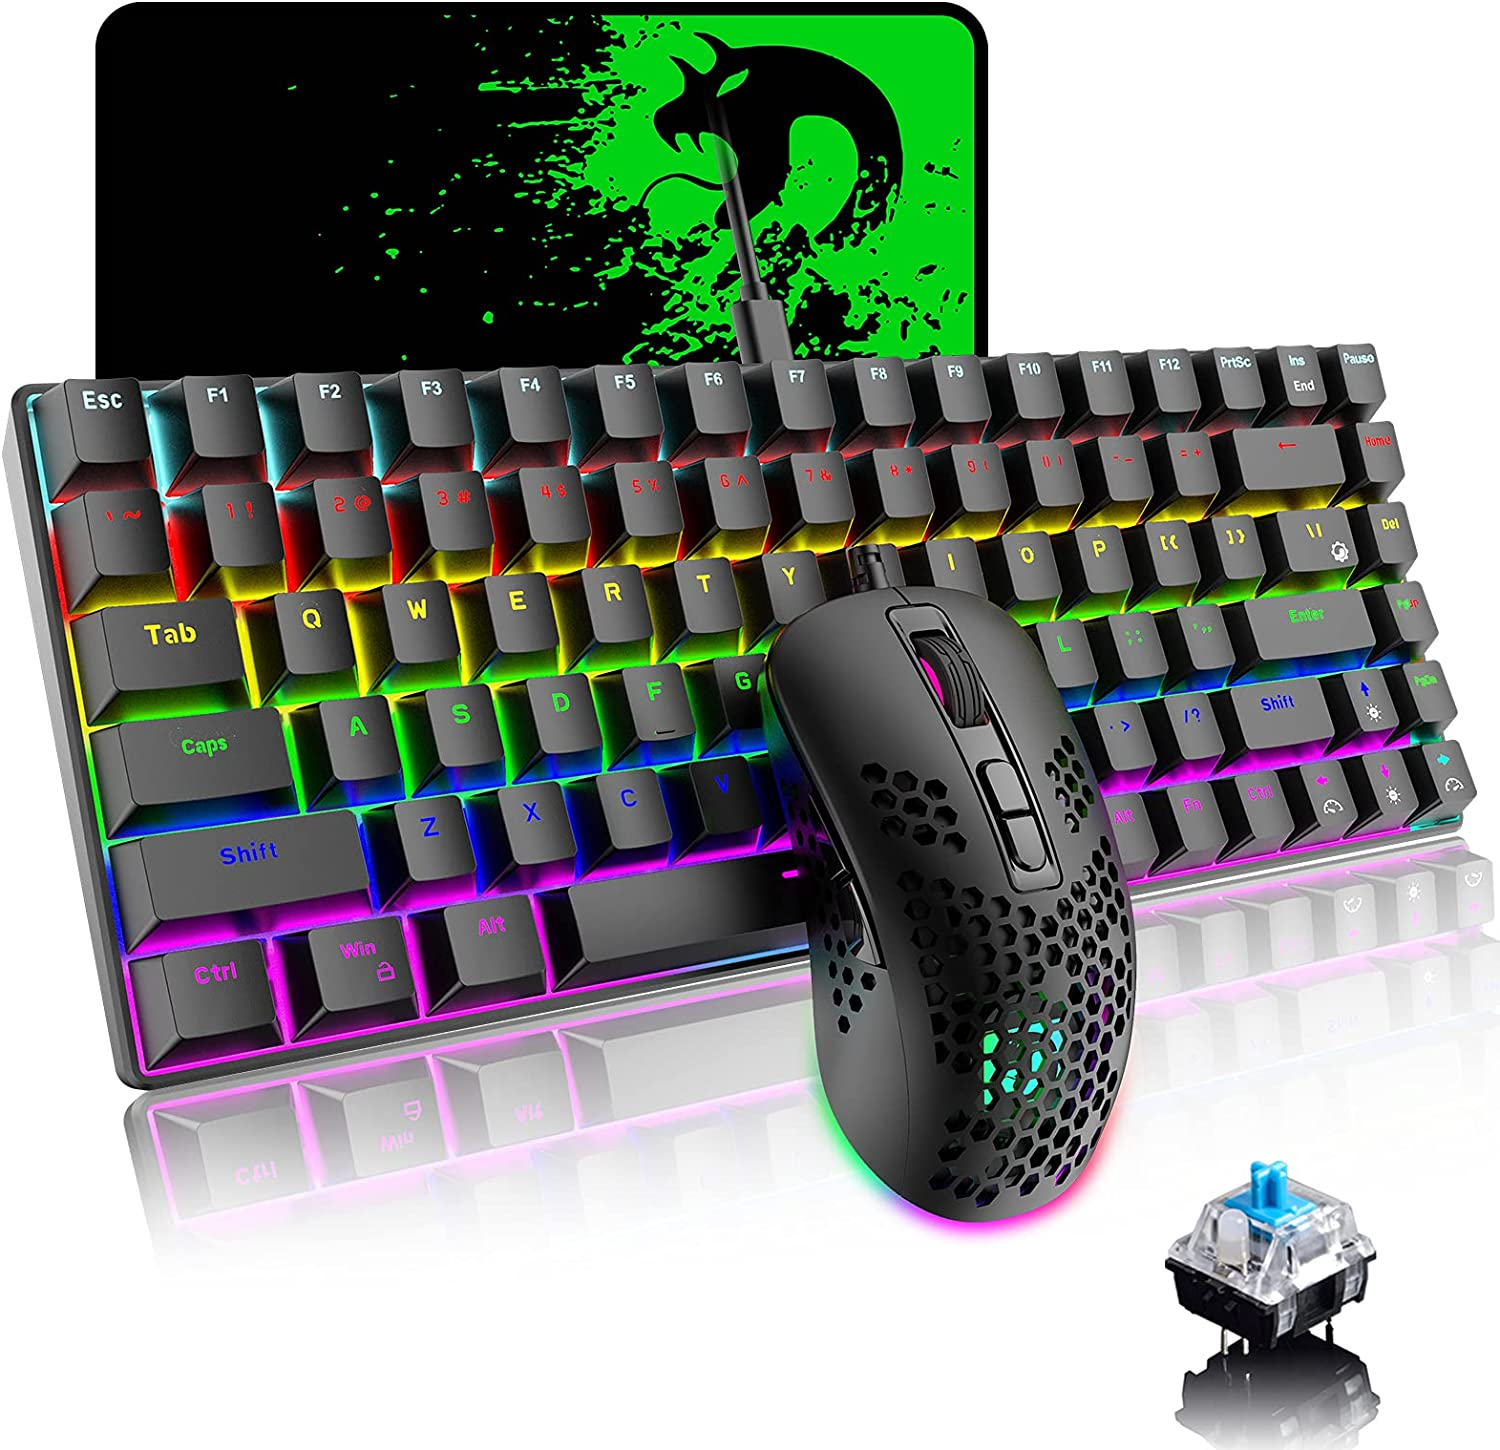 Mechanical Gaming Keyboard and Mouse Combo with 20 Rainbow Backlight 84 Key Anti-ghosting Ergonomic Waterproof Type-C Wired 6400 DPI Honeycomb Mice for PC Mac Gamer Computer Typist(Black/Blue Switch)